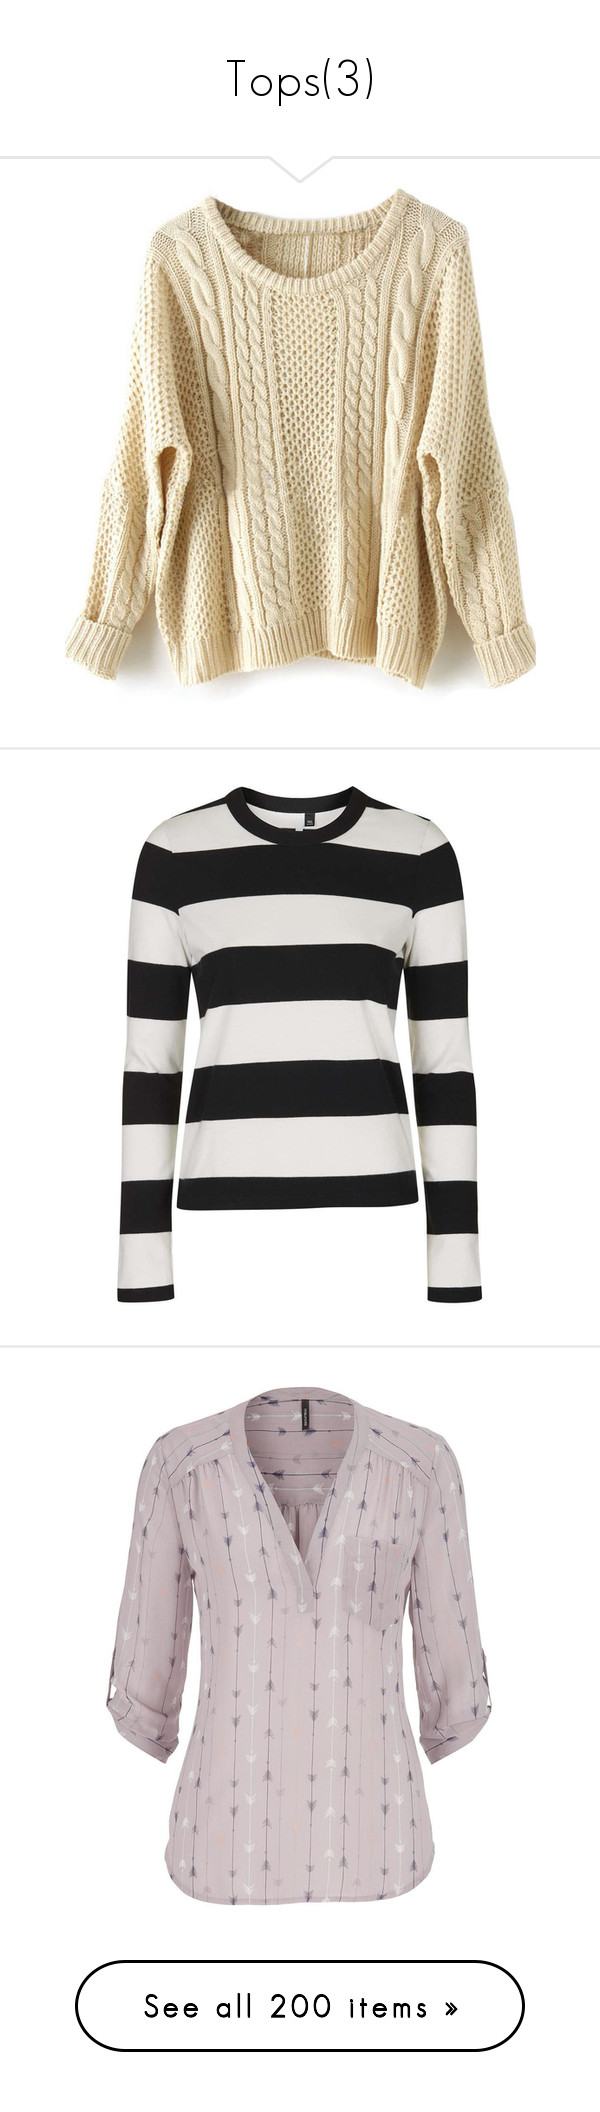 """""""Tops(3)"""" by grace-food-lover1 ❤ liked on Polyvore featuring tops, sweaters, shirts, long sleeves, apricot, long sleeve pullover, long sleeve pullover sweater, batwing sweater, shirt sweater and batwing sleeve sweater"""